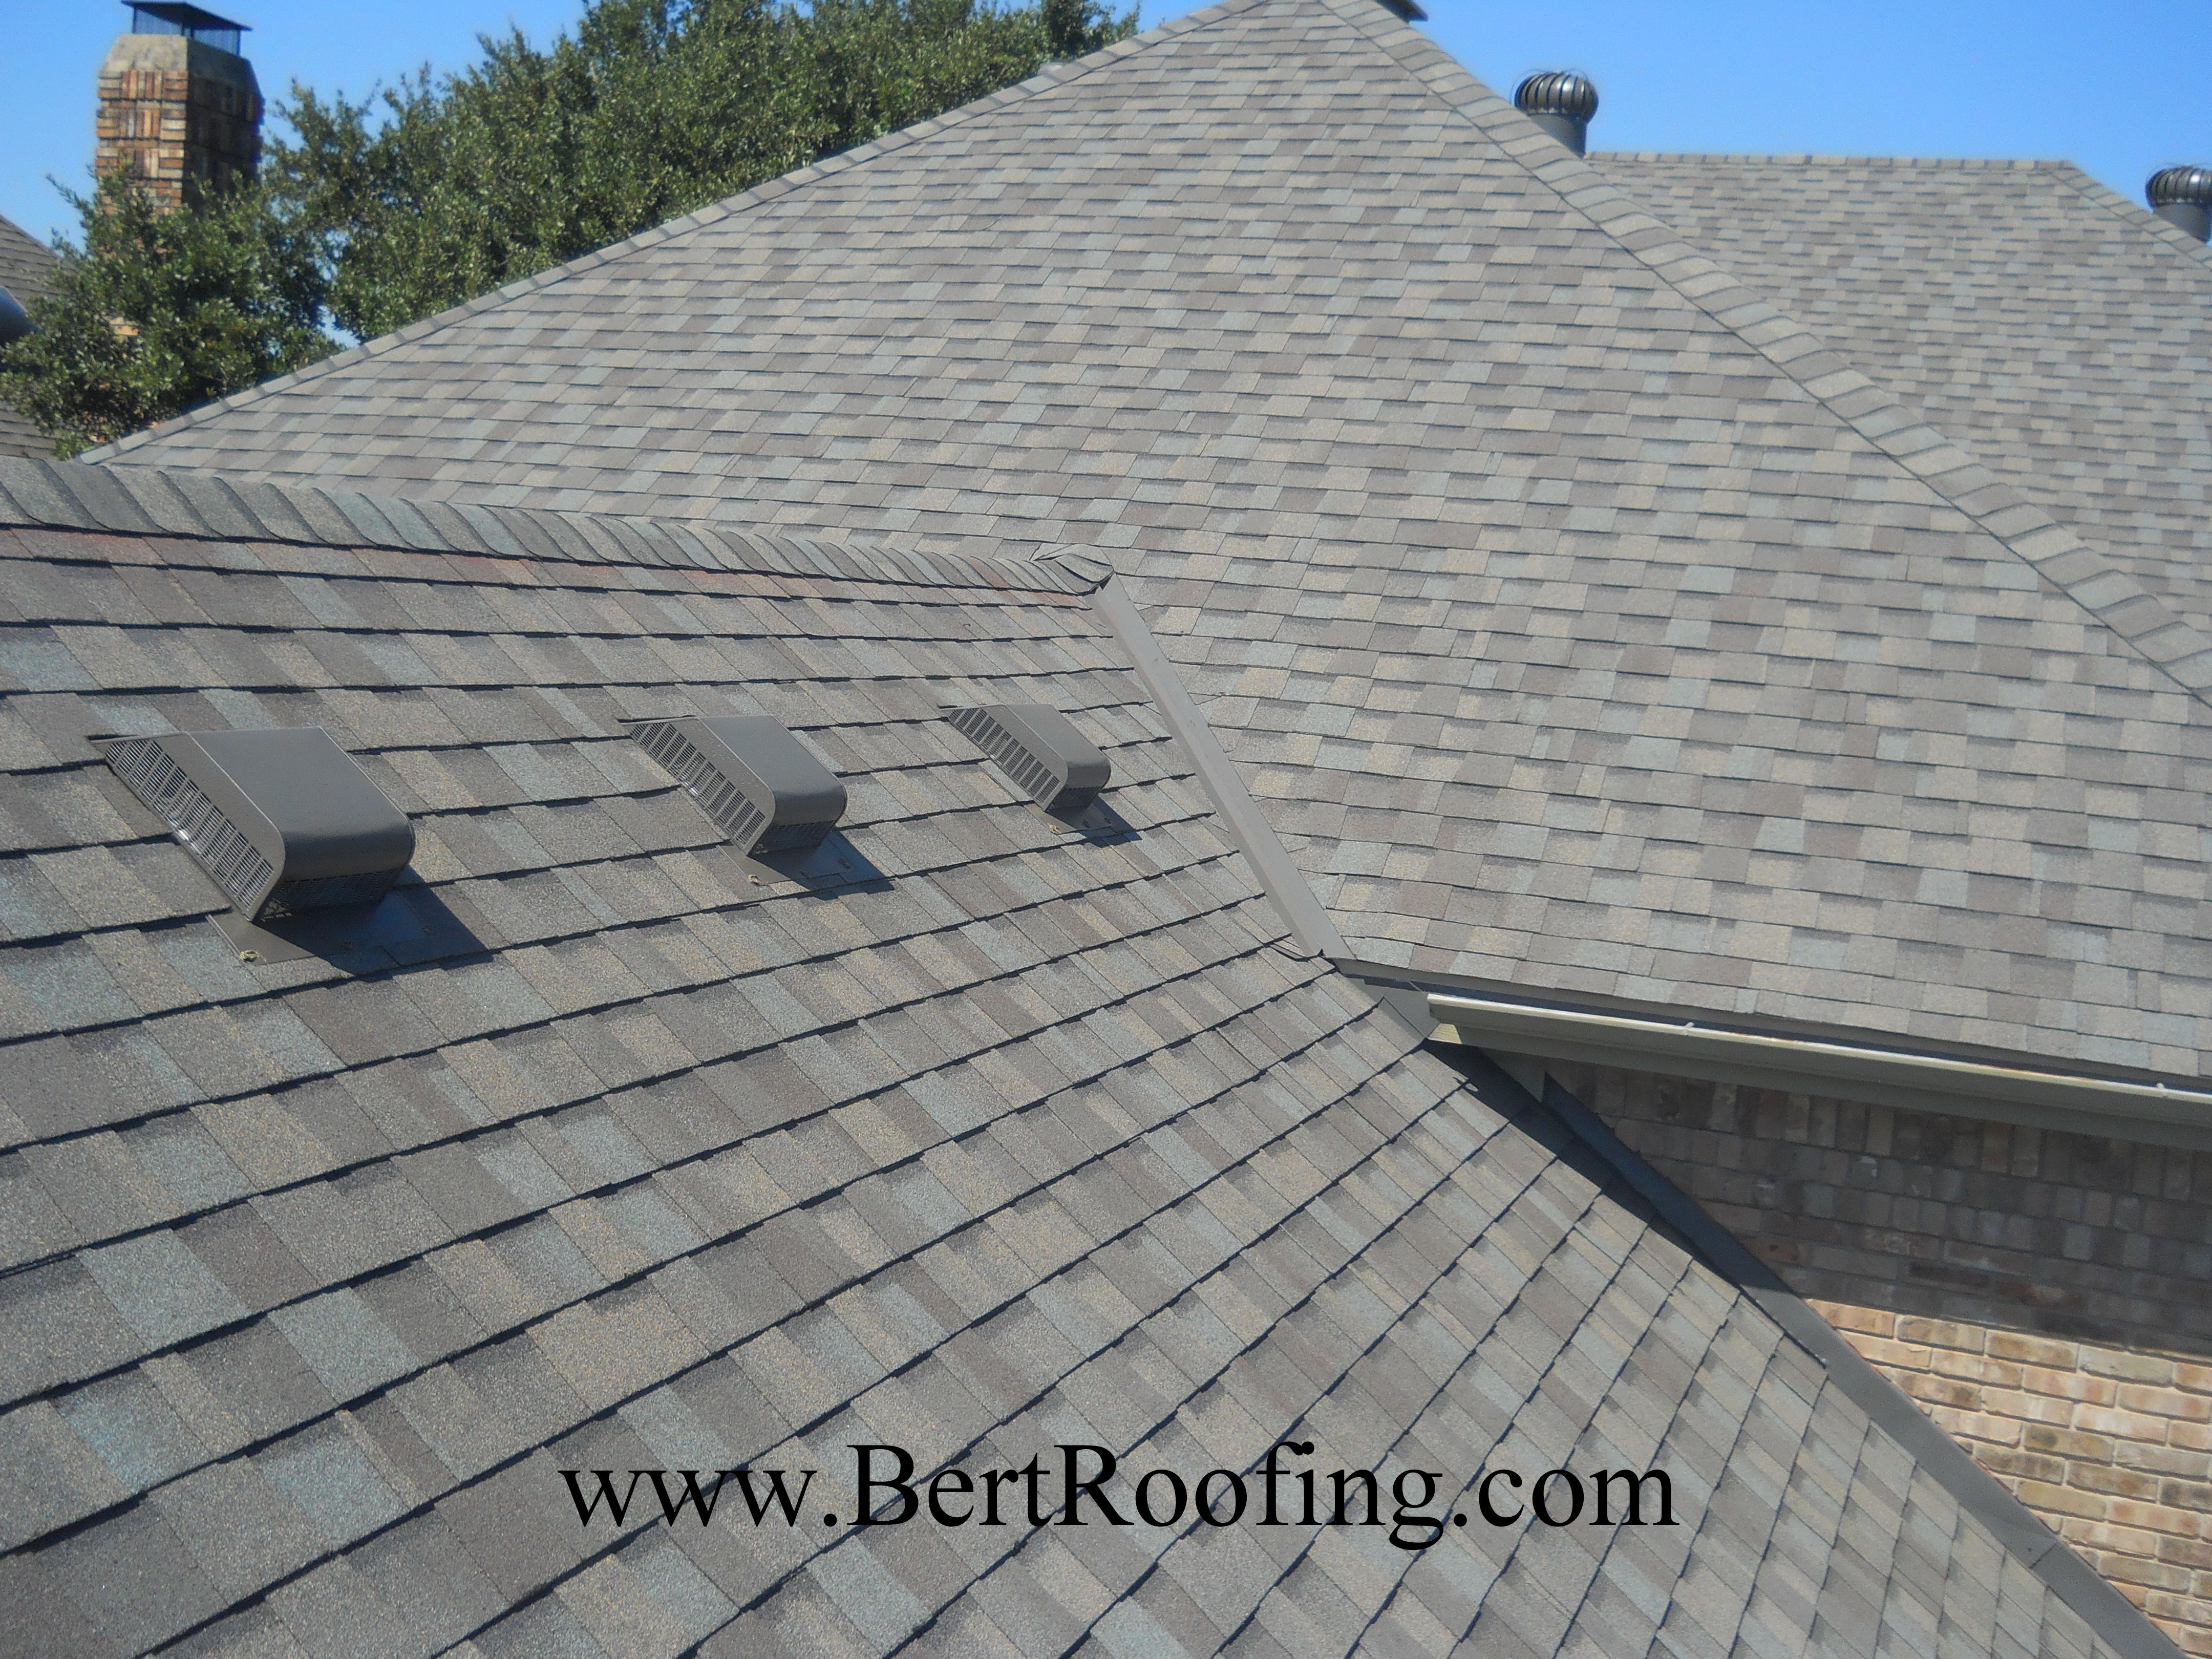 Bert Roofing Dallas Roofing Plano Roofing Contractor Roofing Shingle Colors Weathered Wood